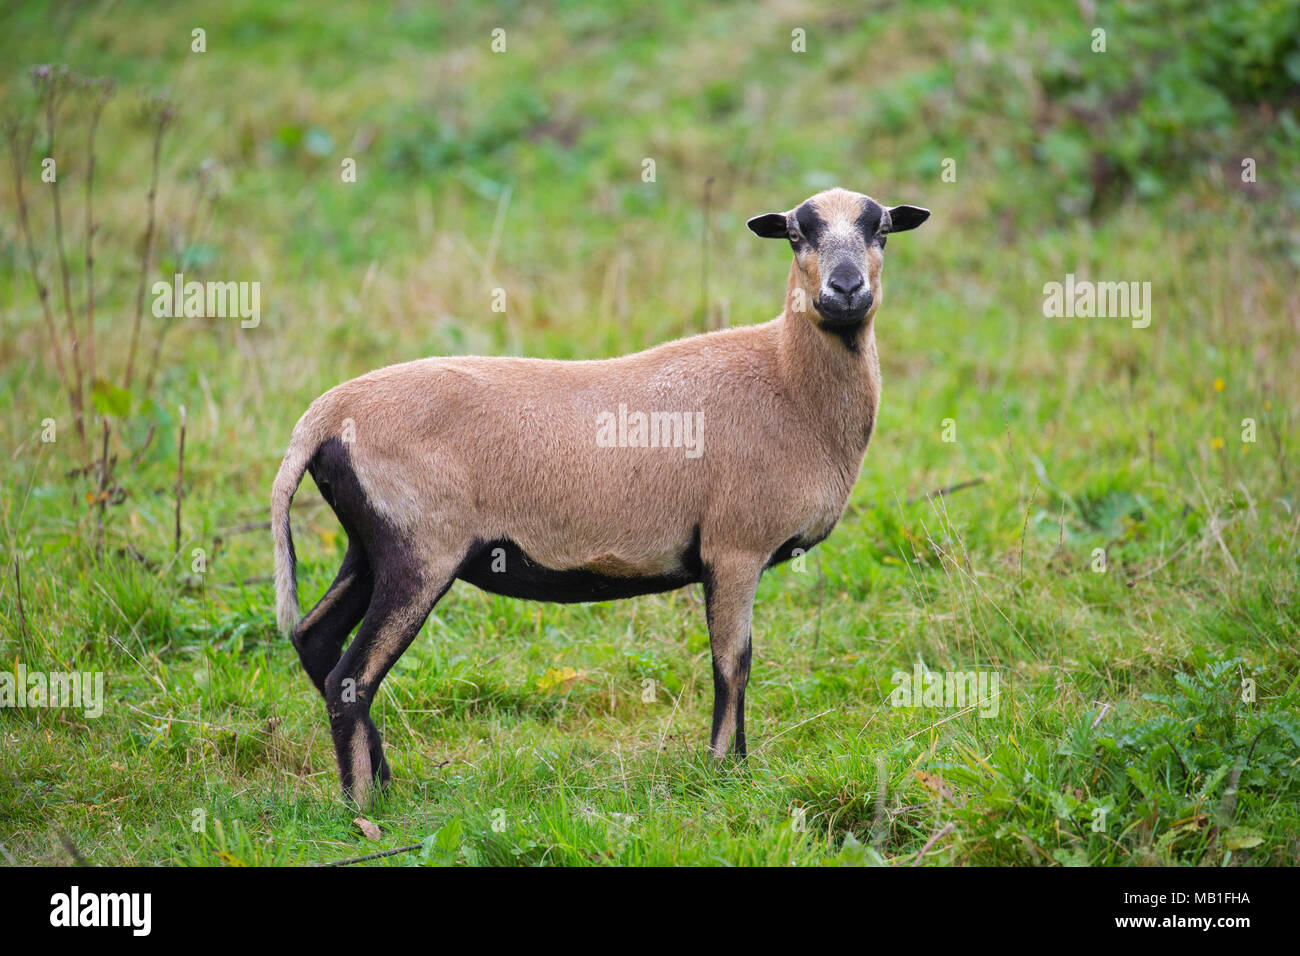 Cameroon sheep ewe, domesticated breed of sheep from West Africa in meadow - Stock Image